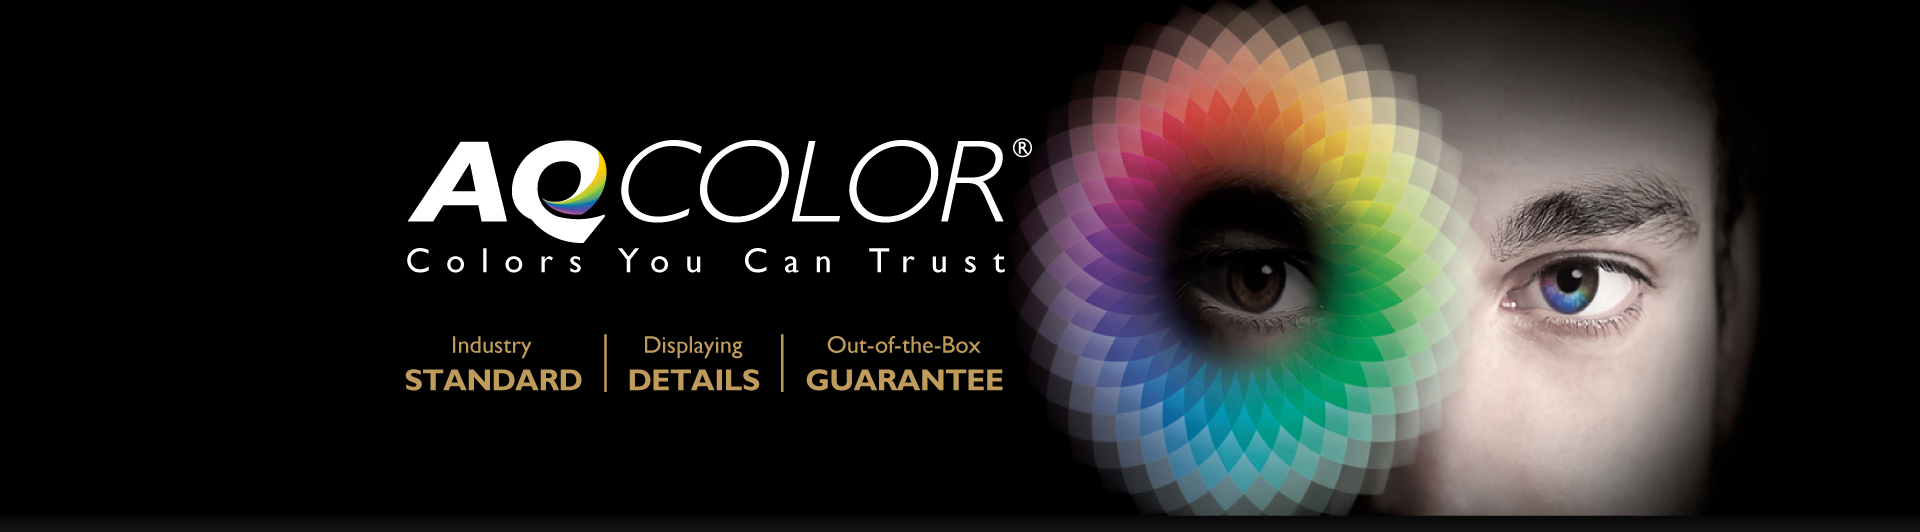 BenQ IPS 27 inch monitor sw270c is equipped with the AQCOLOR technology, which brings trust colors.